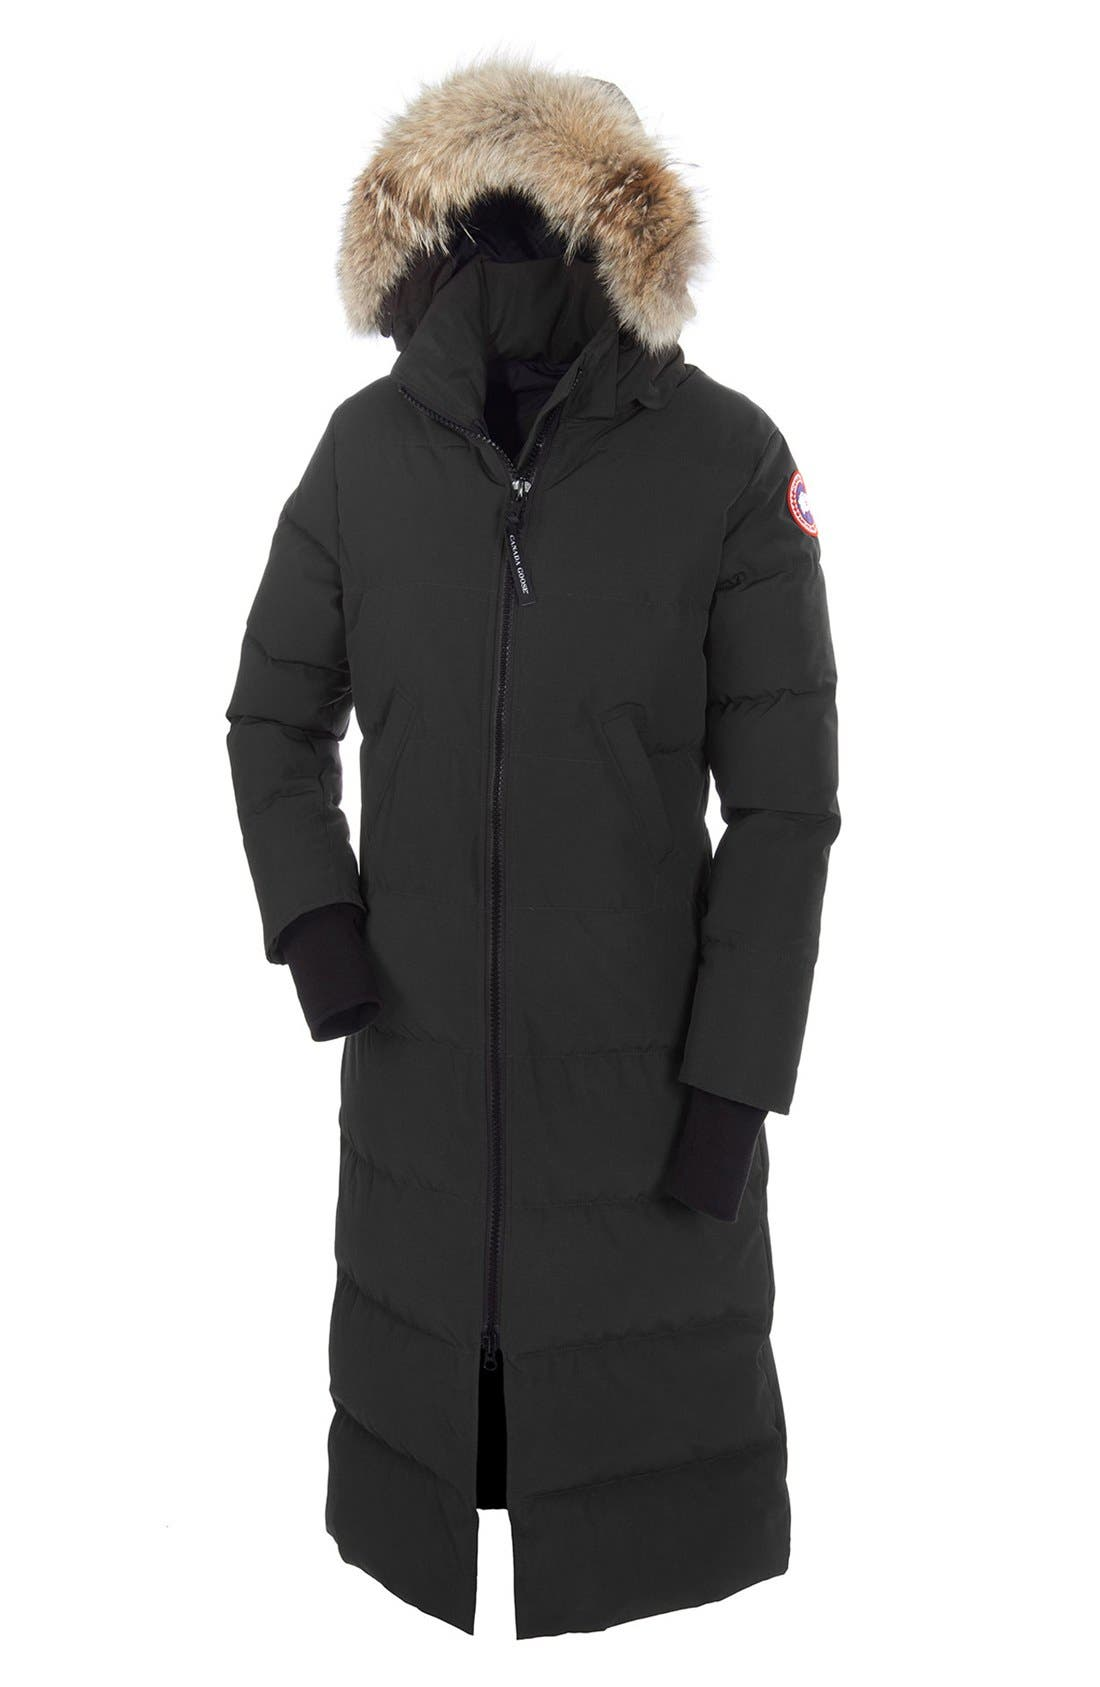 all canada goose jackets